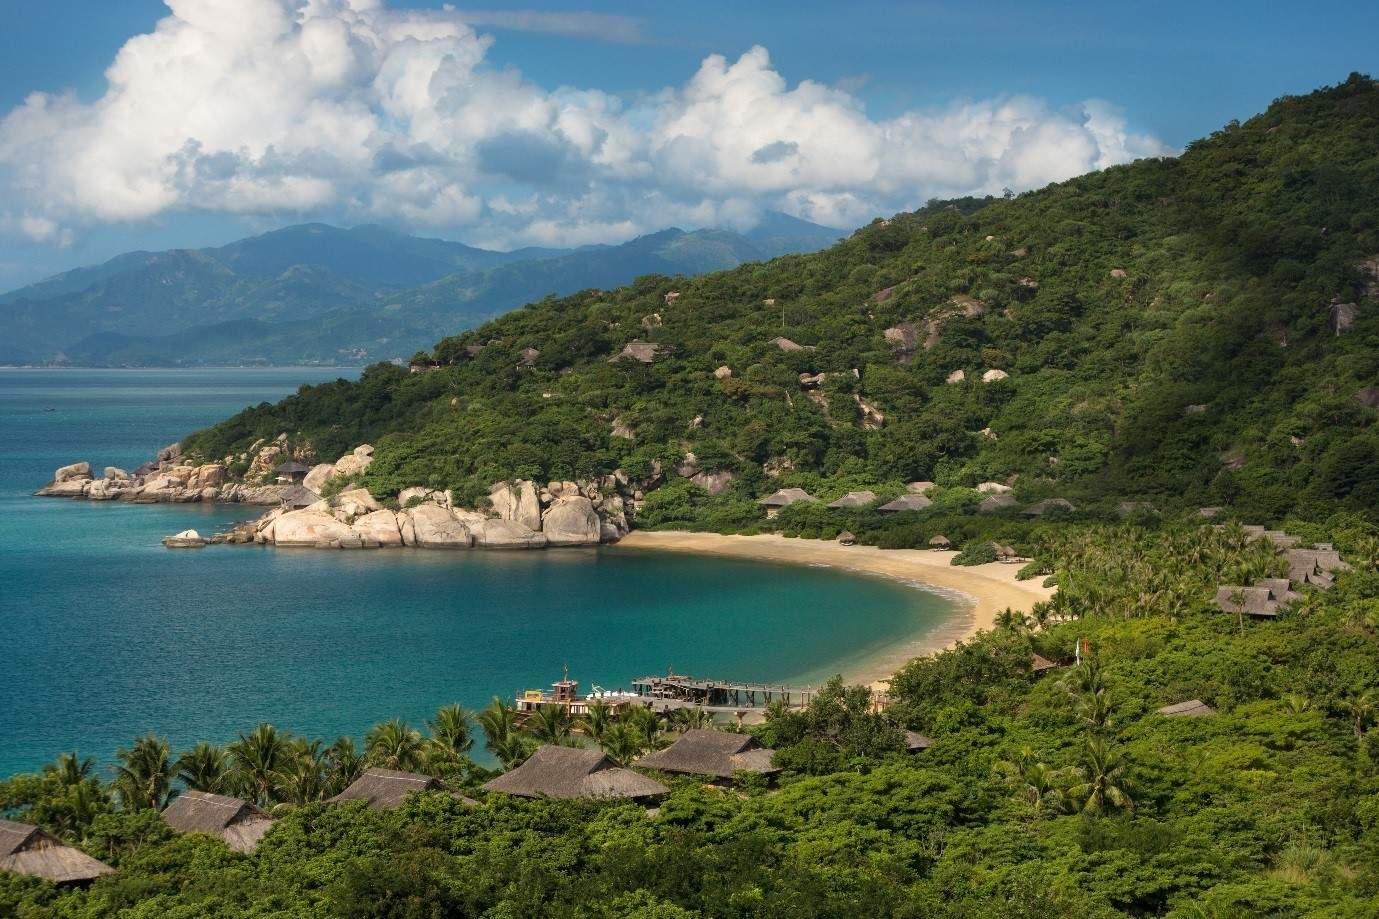 View of the sea and beach at Six Senses Ninh Van Bay in Vietnam